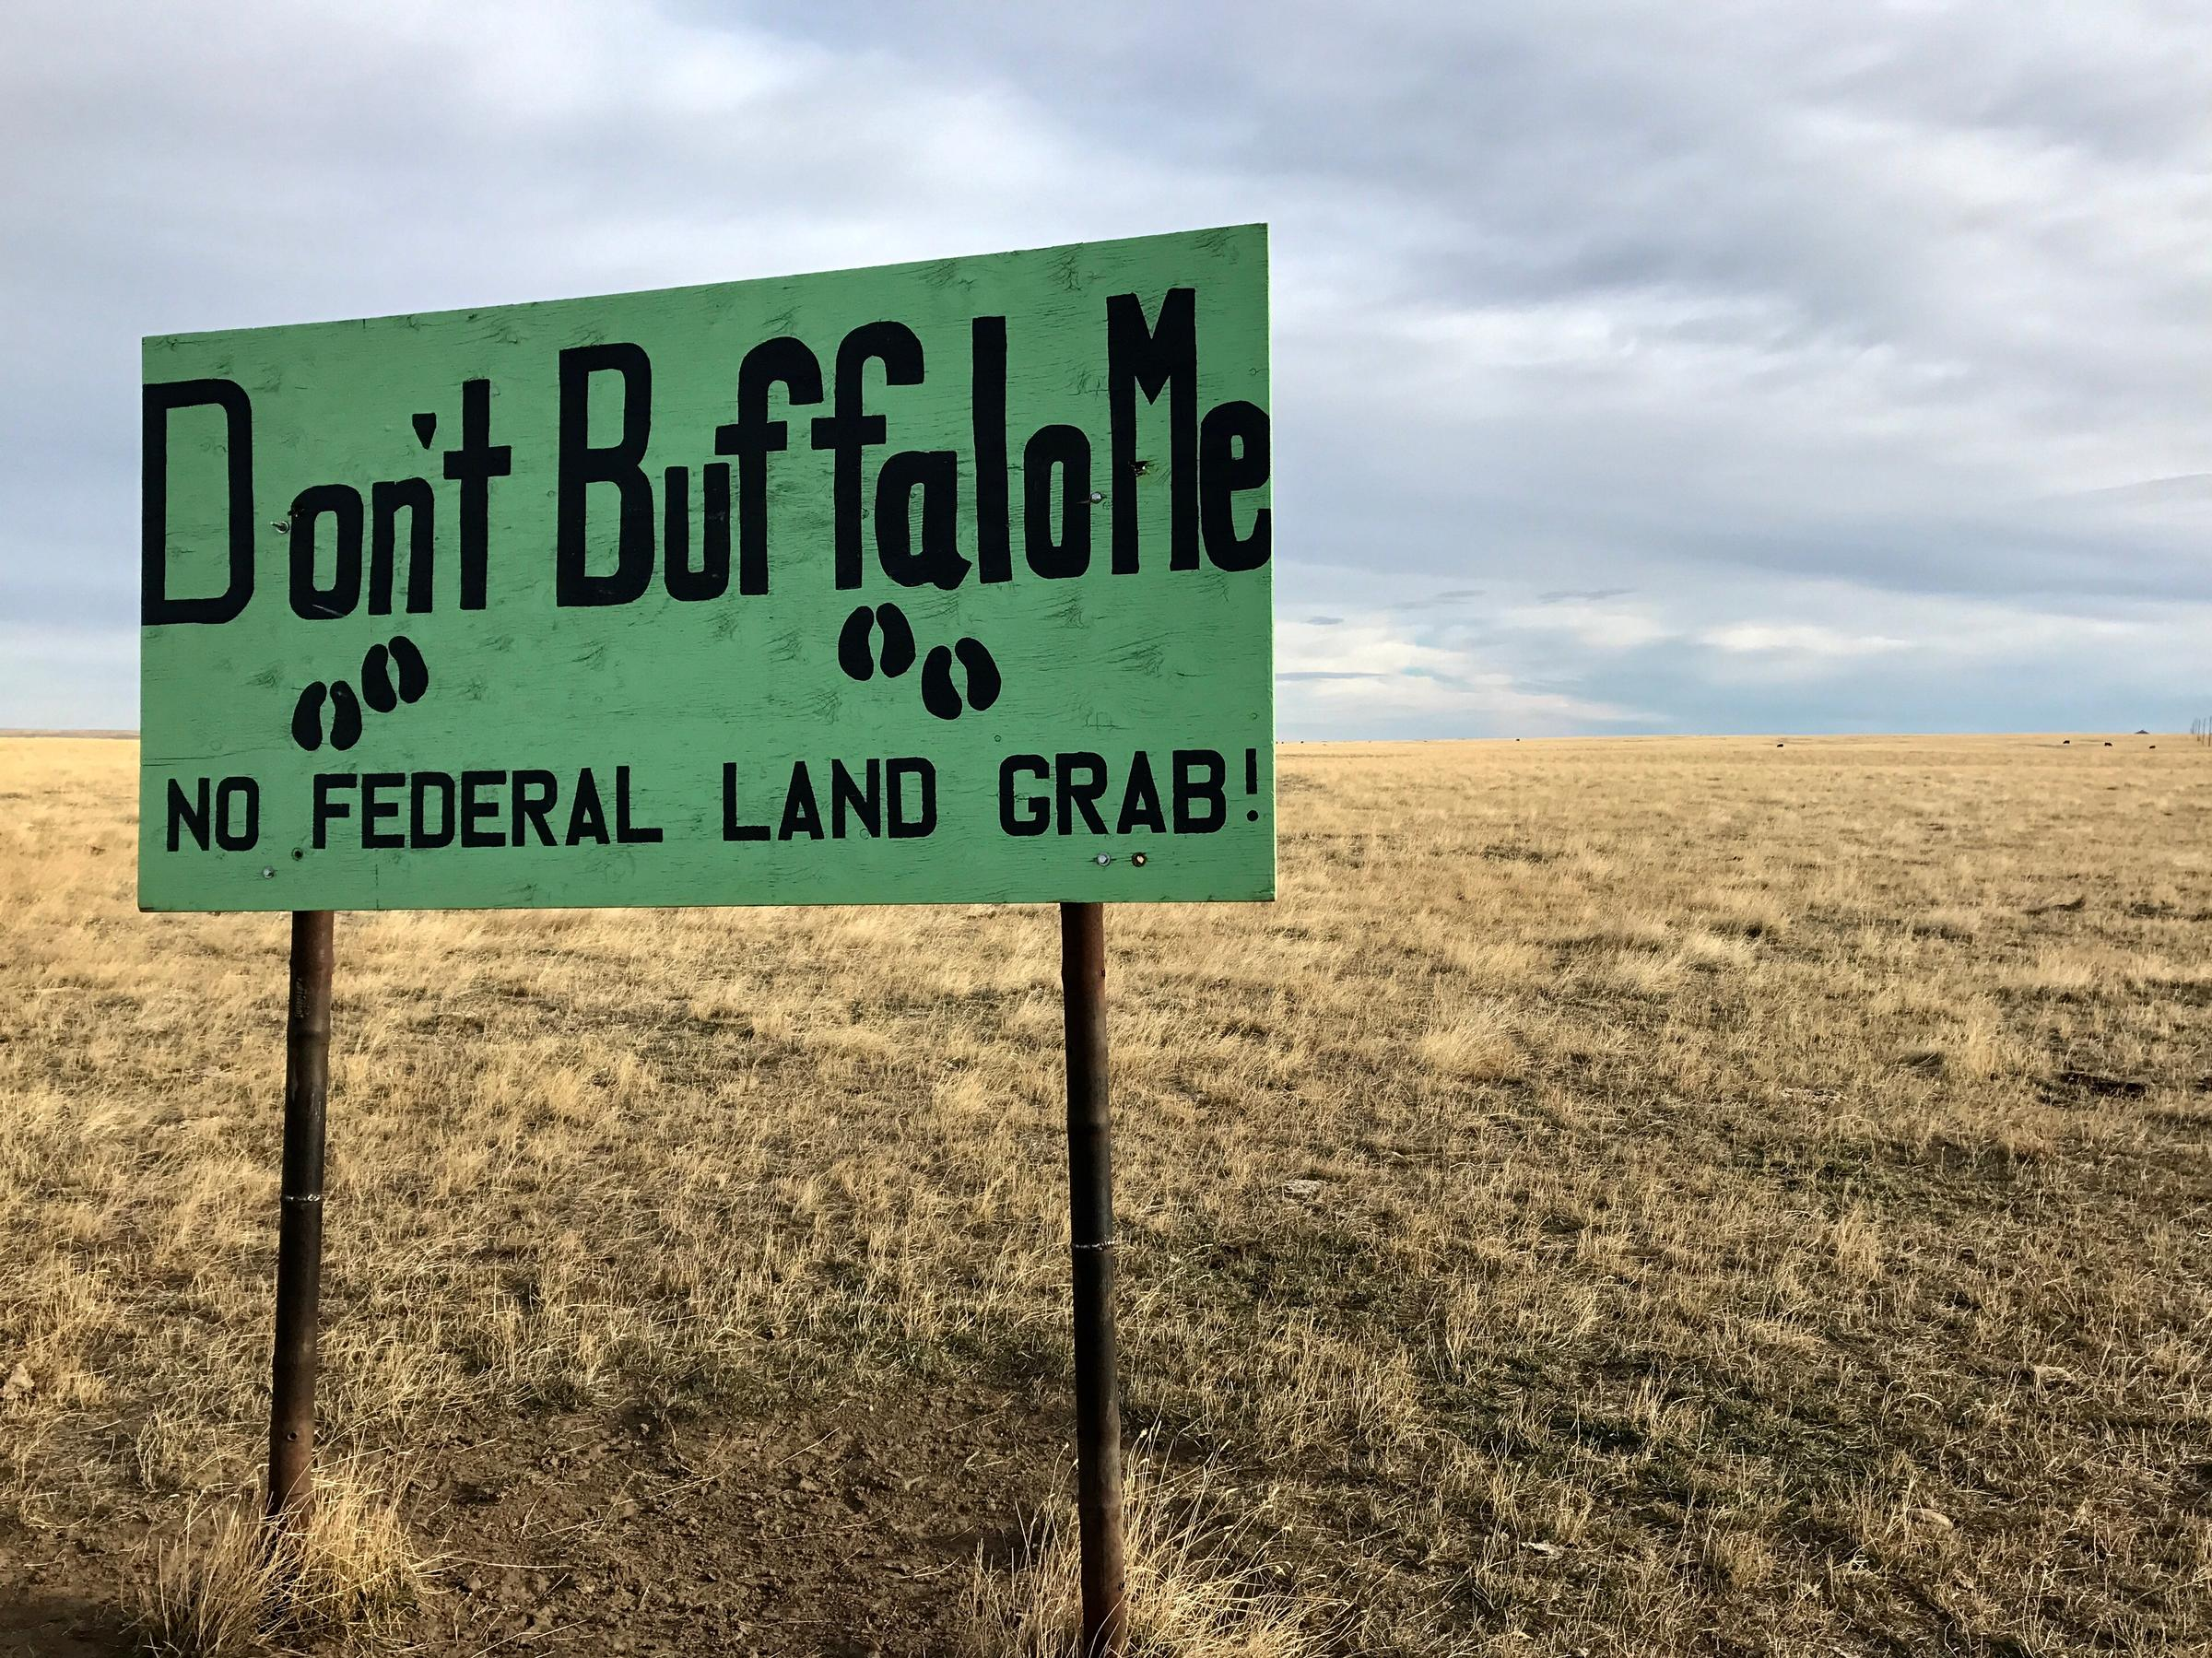 Conservation Group Buys Ranches, Replaces Cattle With Wild Bison And